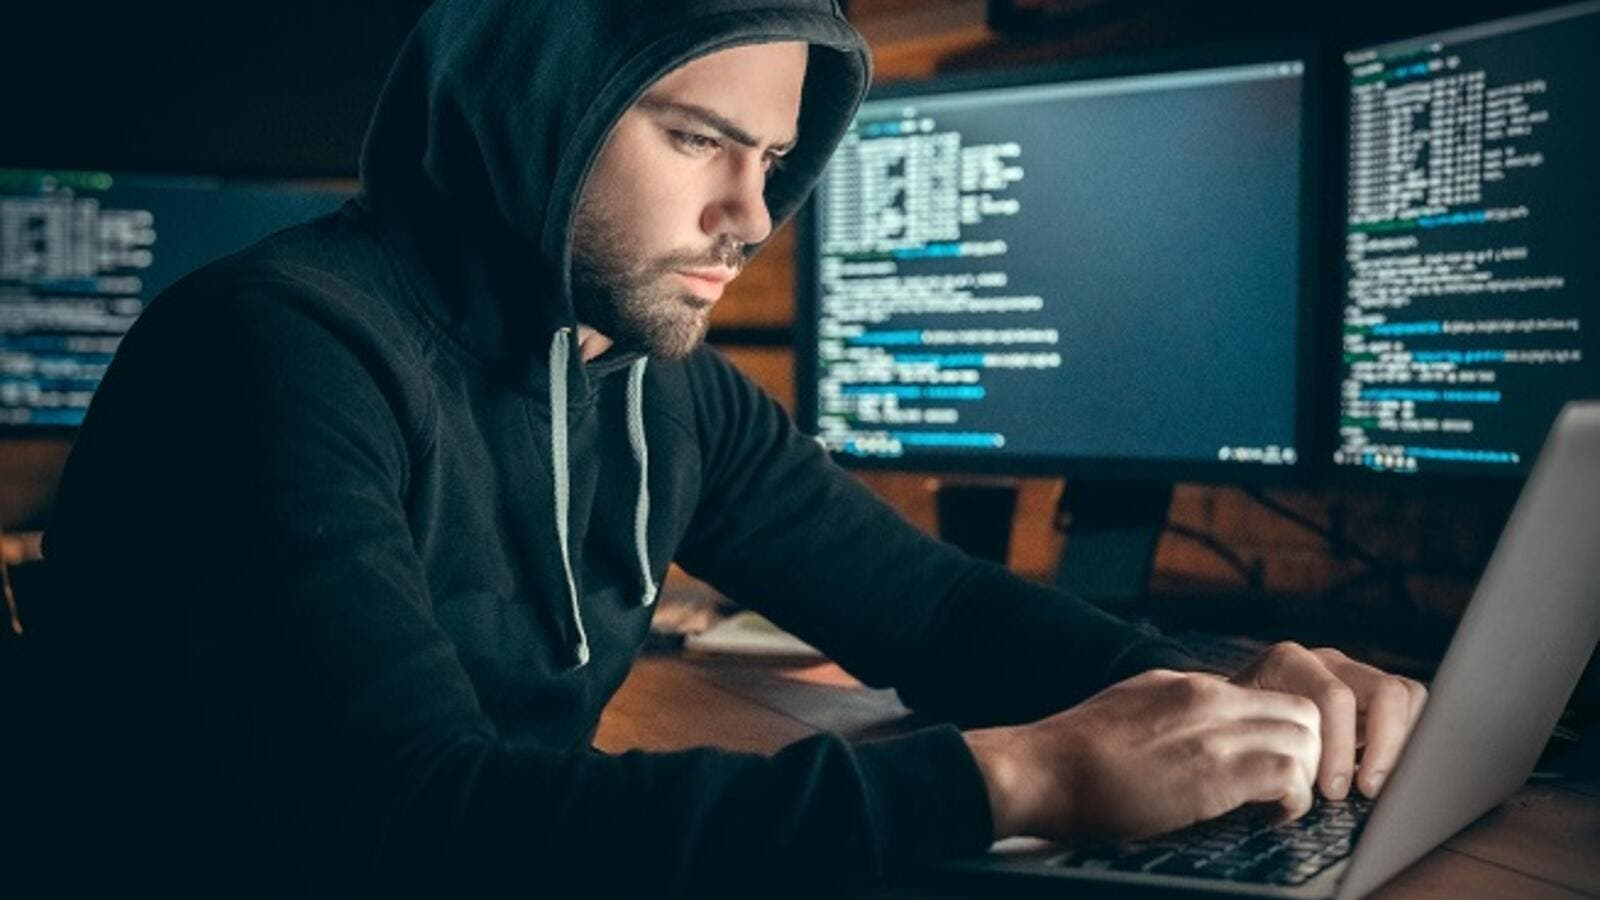 With advancement in technology, more goods are easily exploited in illegal online markets. (Shutterstock)